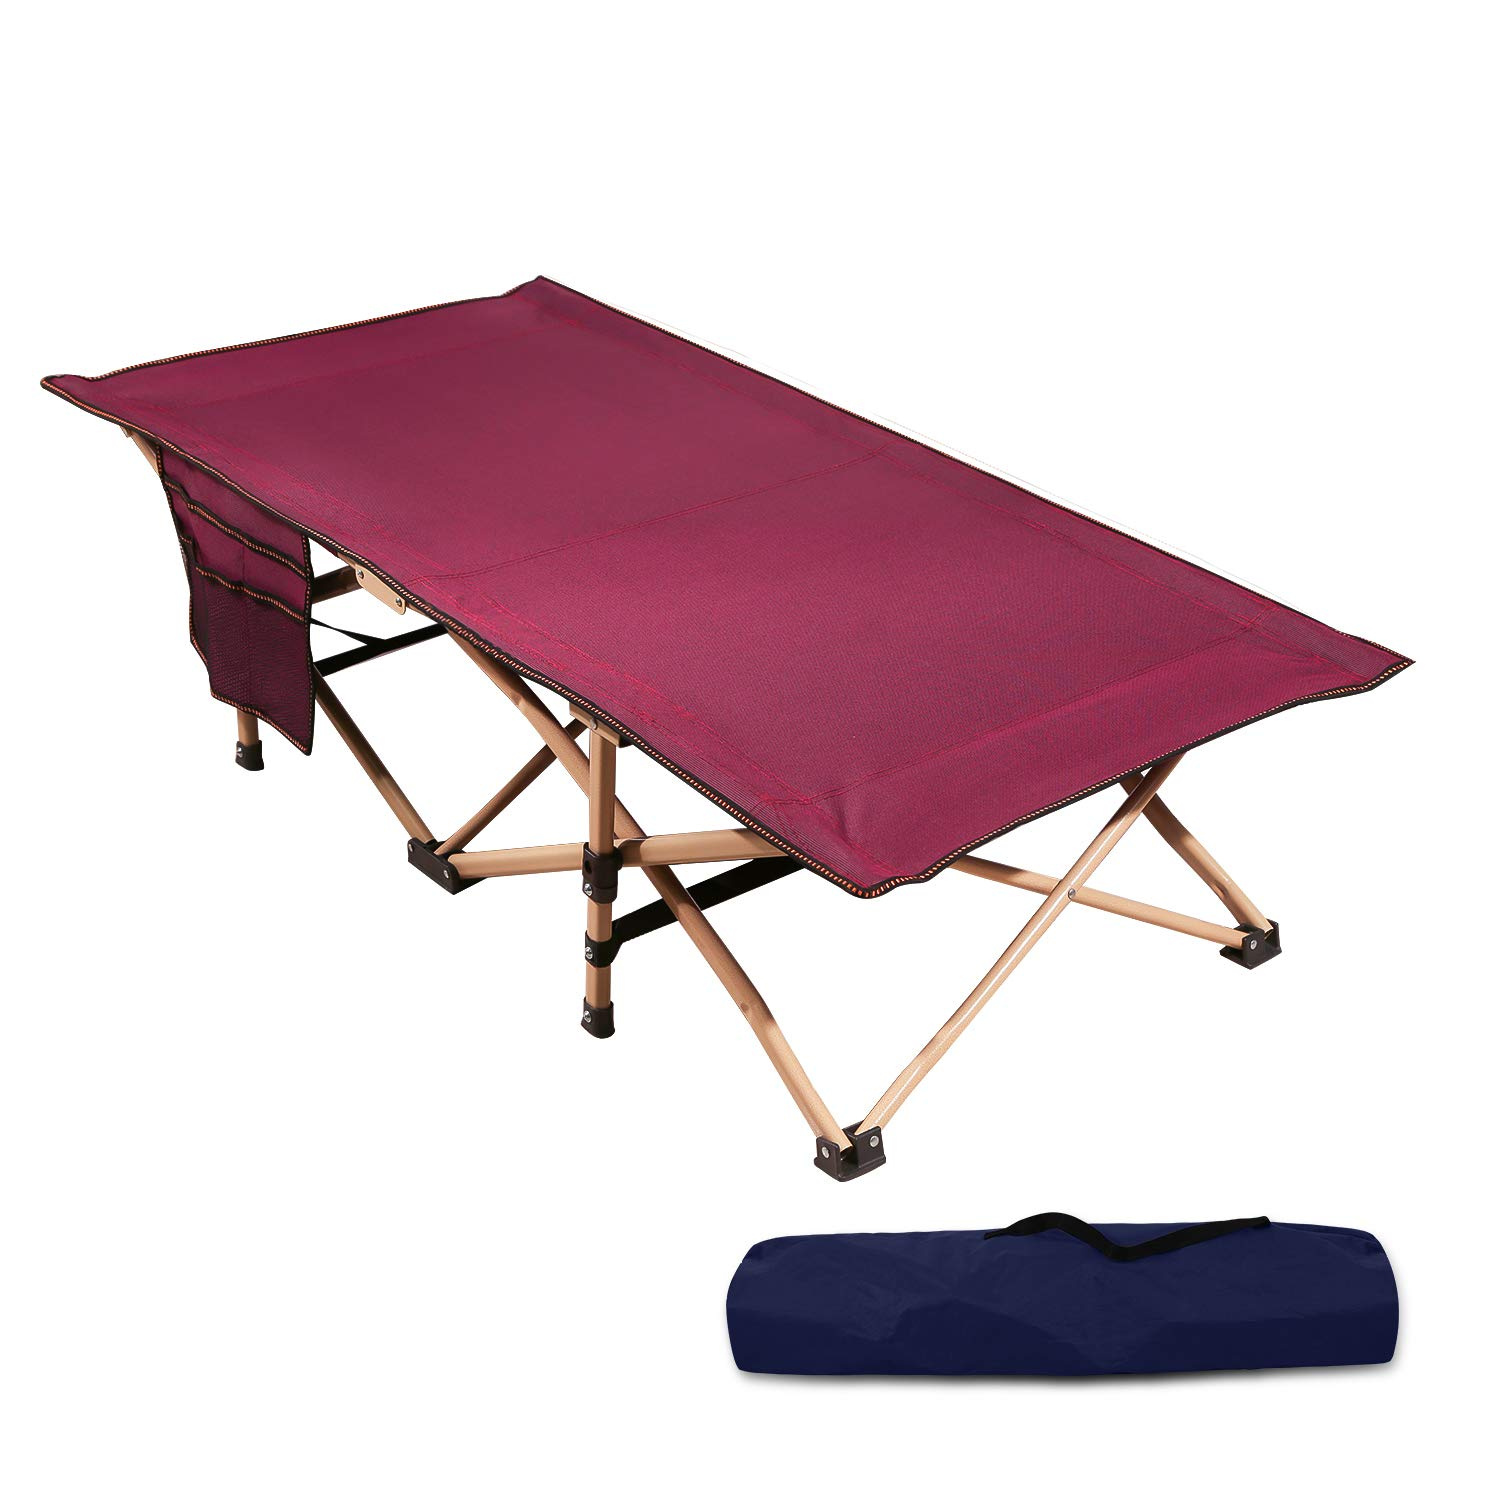 REDCAMP Extra Long Kids Cot for Camping, Sturdy Steel Folding Toddler Cot Bed for Travel Sleeping, Portable with Carry Bag, Wine Red 53x29